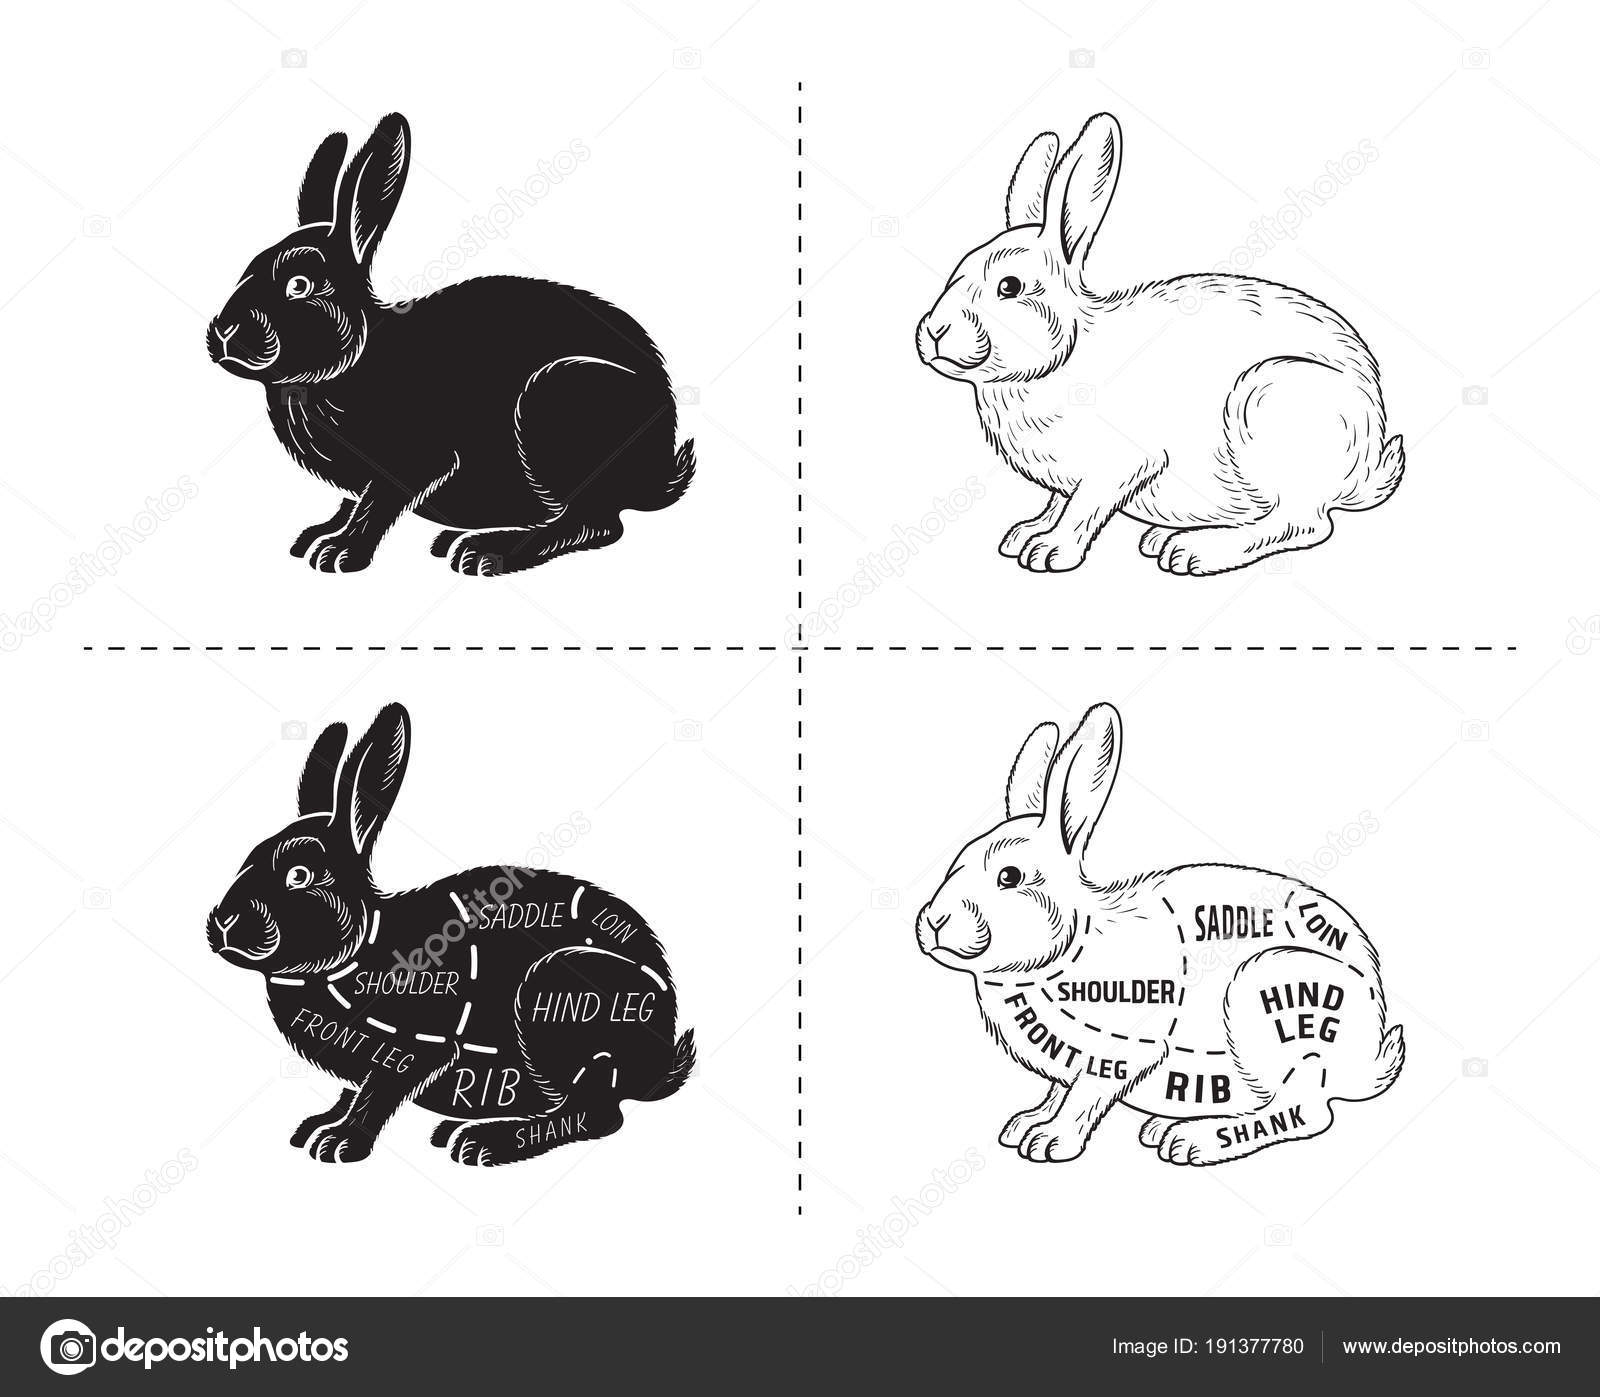 depositphotos_191377780 stock illustration cut of rabbit poster butcher cut of rabbit poster butcher diagram for groceries, meat stores